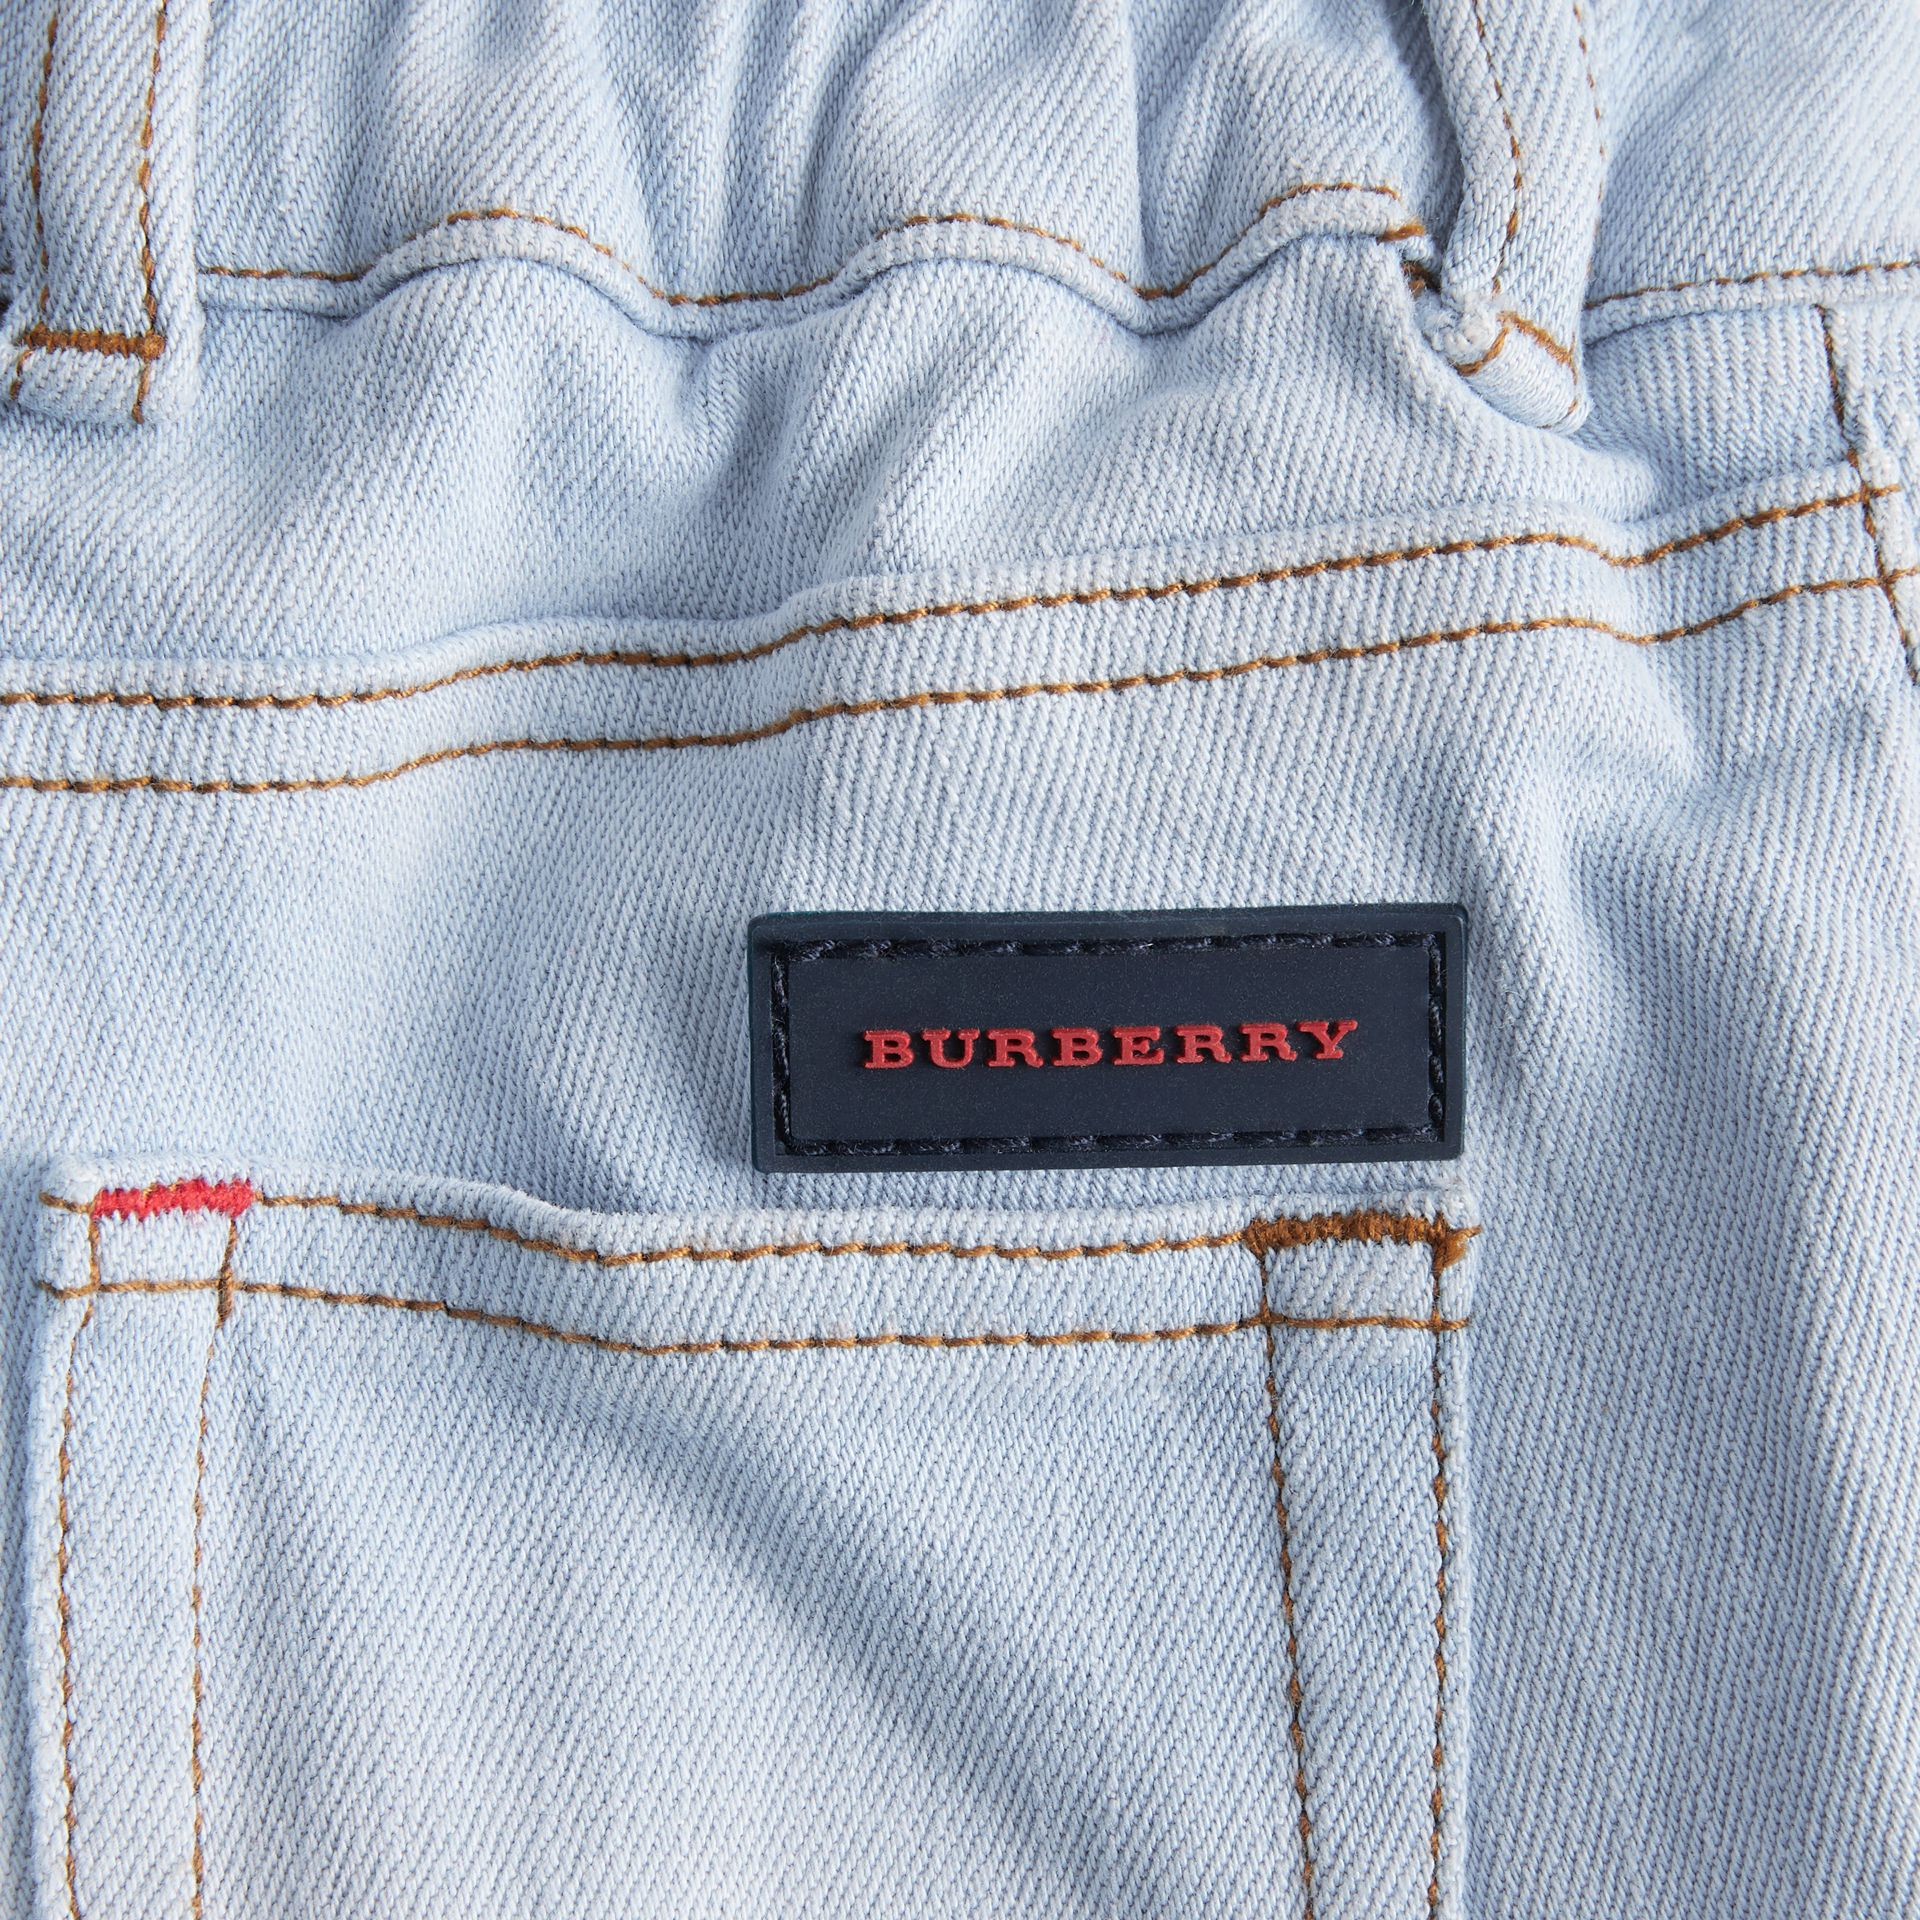 Relaxed Fit Stretch Denim Jeans in Light Blue - Children | Burberry Australia - gallery image 1